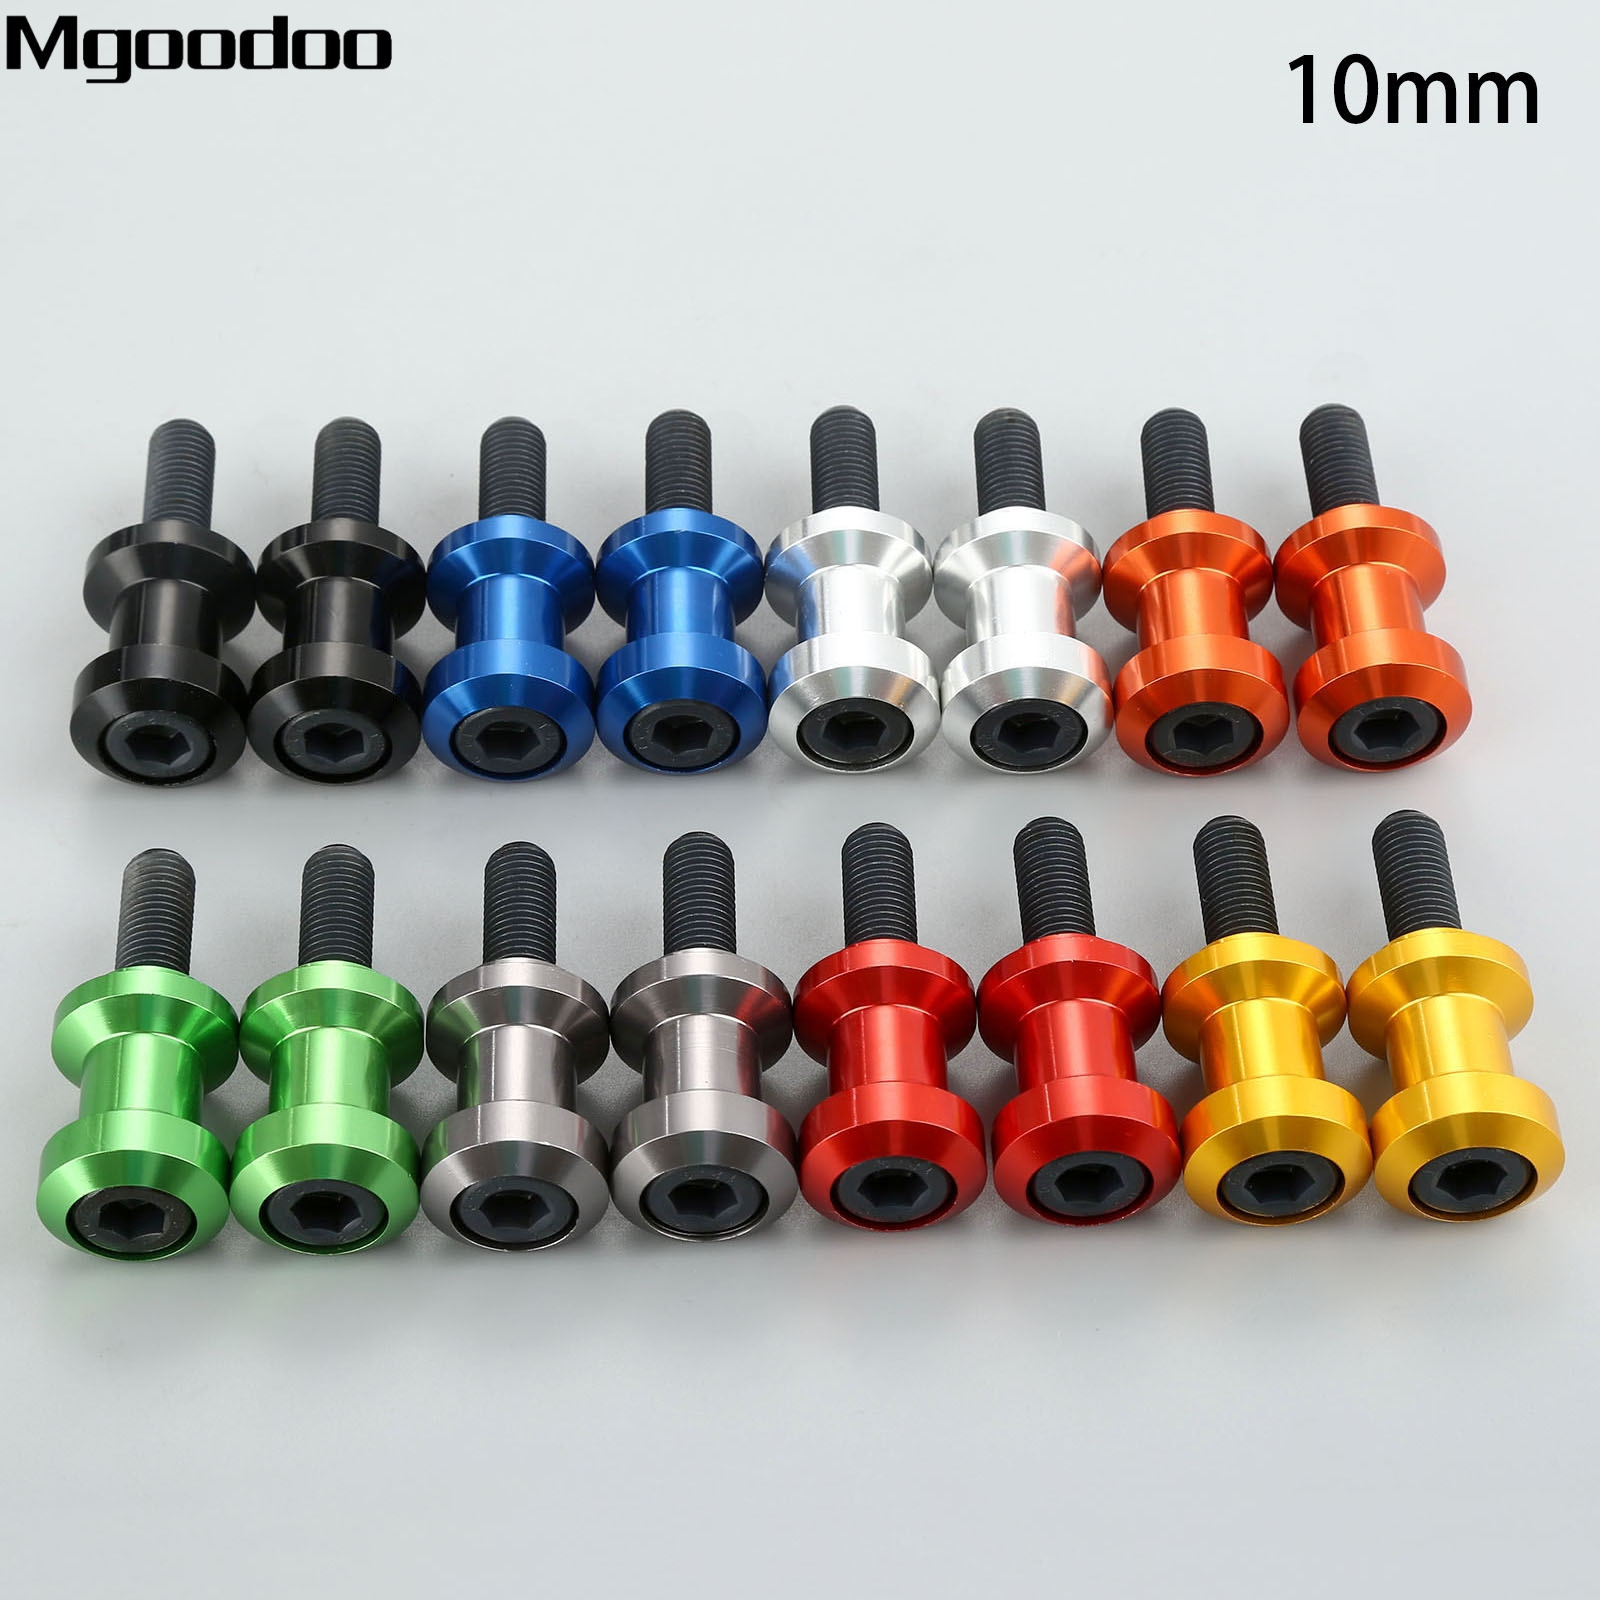 Mgoodoo CNC Aluminium 10mm Motorcycle Swingarm Spools Sliders For Yamaha YZF750/1000 FZR400/600/1000 KTM 690 990 Duke 1190 RC8 бушков а летающие острова приключения сварога